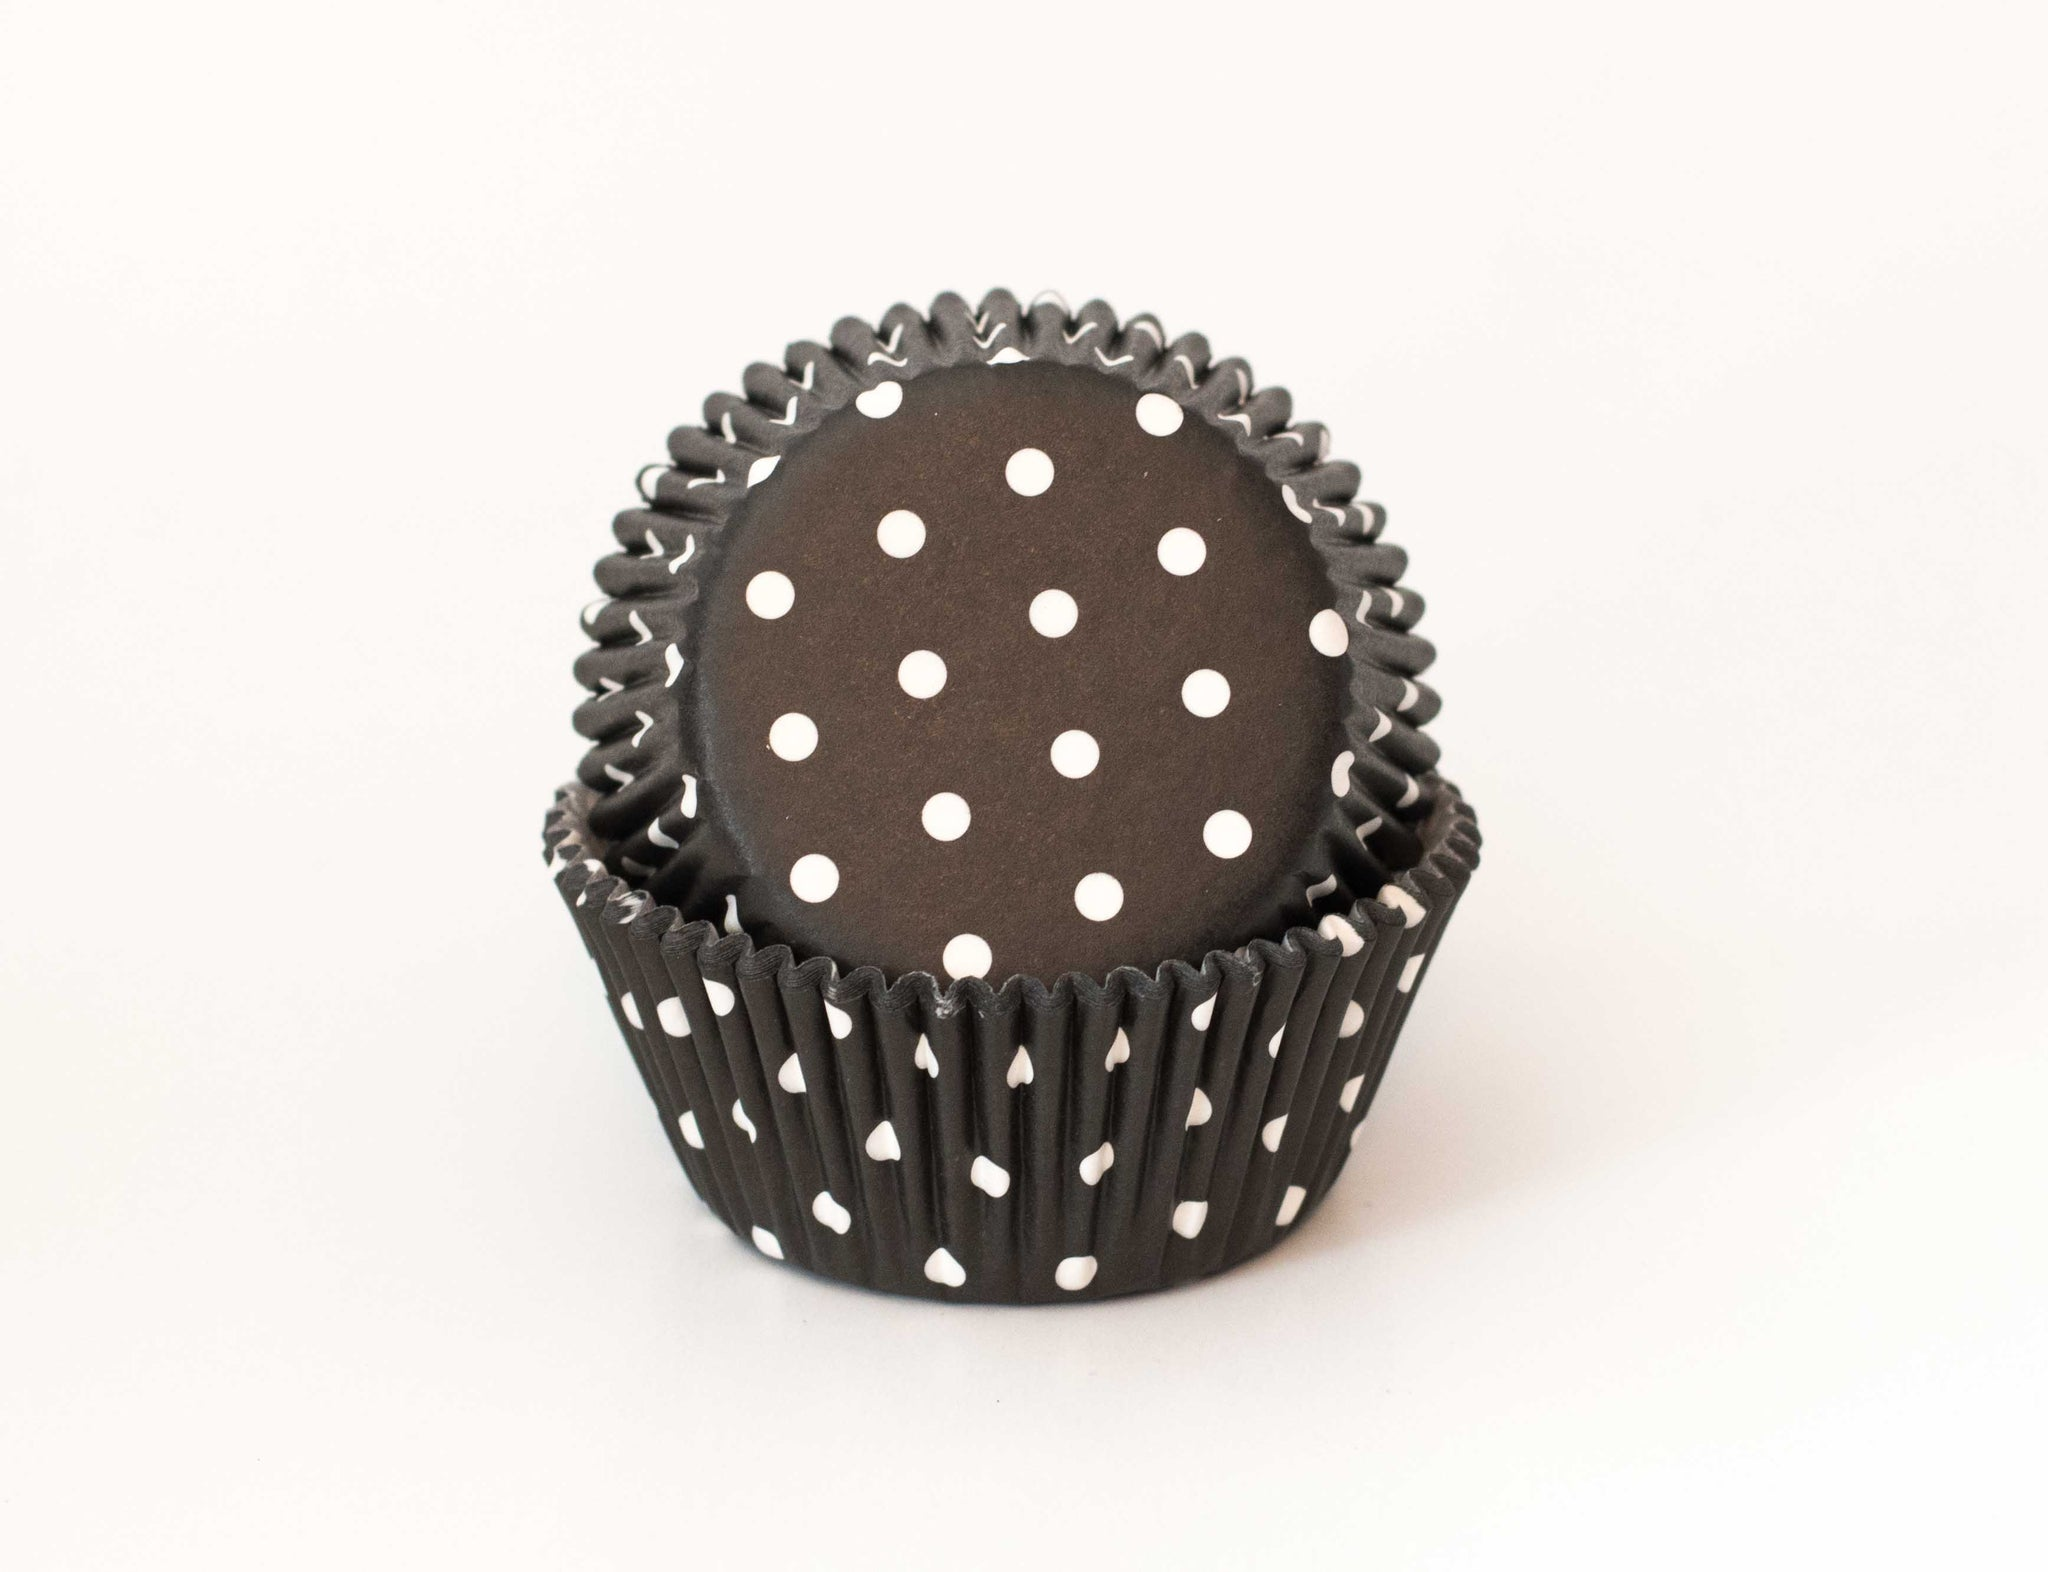 Cupcake Liners - Black Polka Dot - Pkg of 25